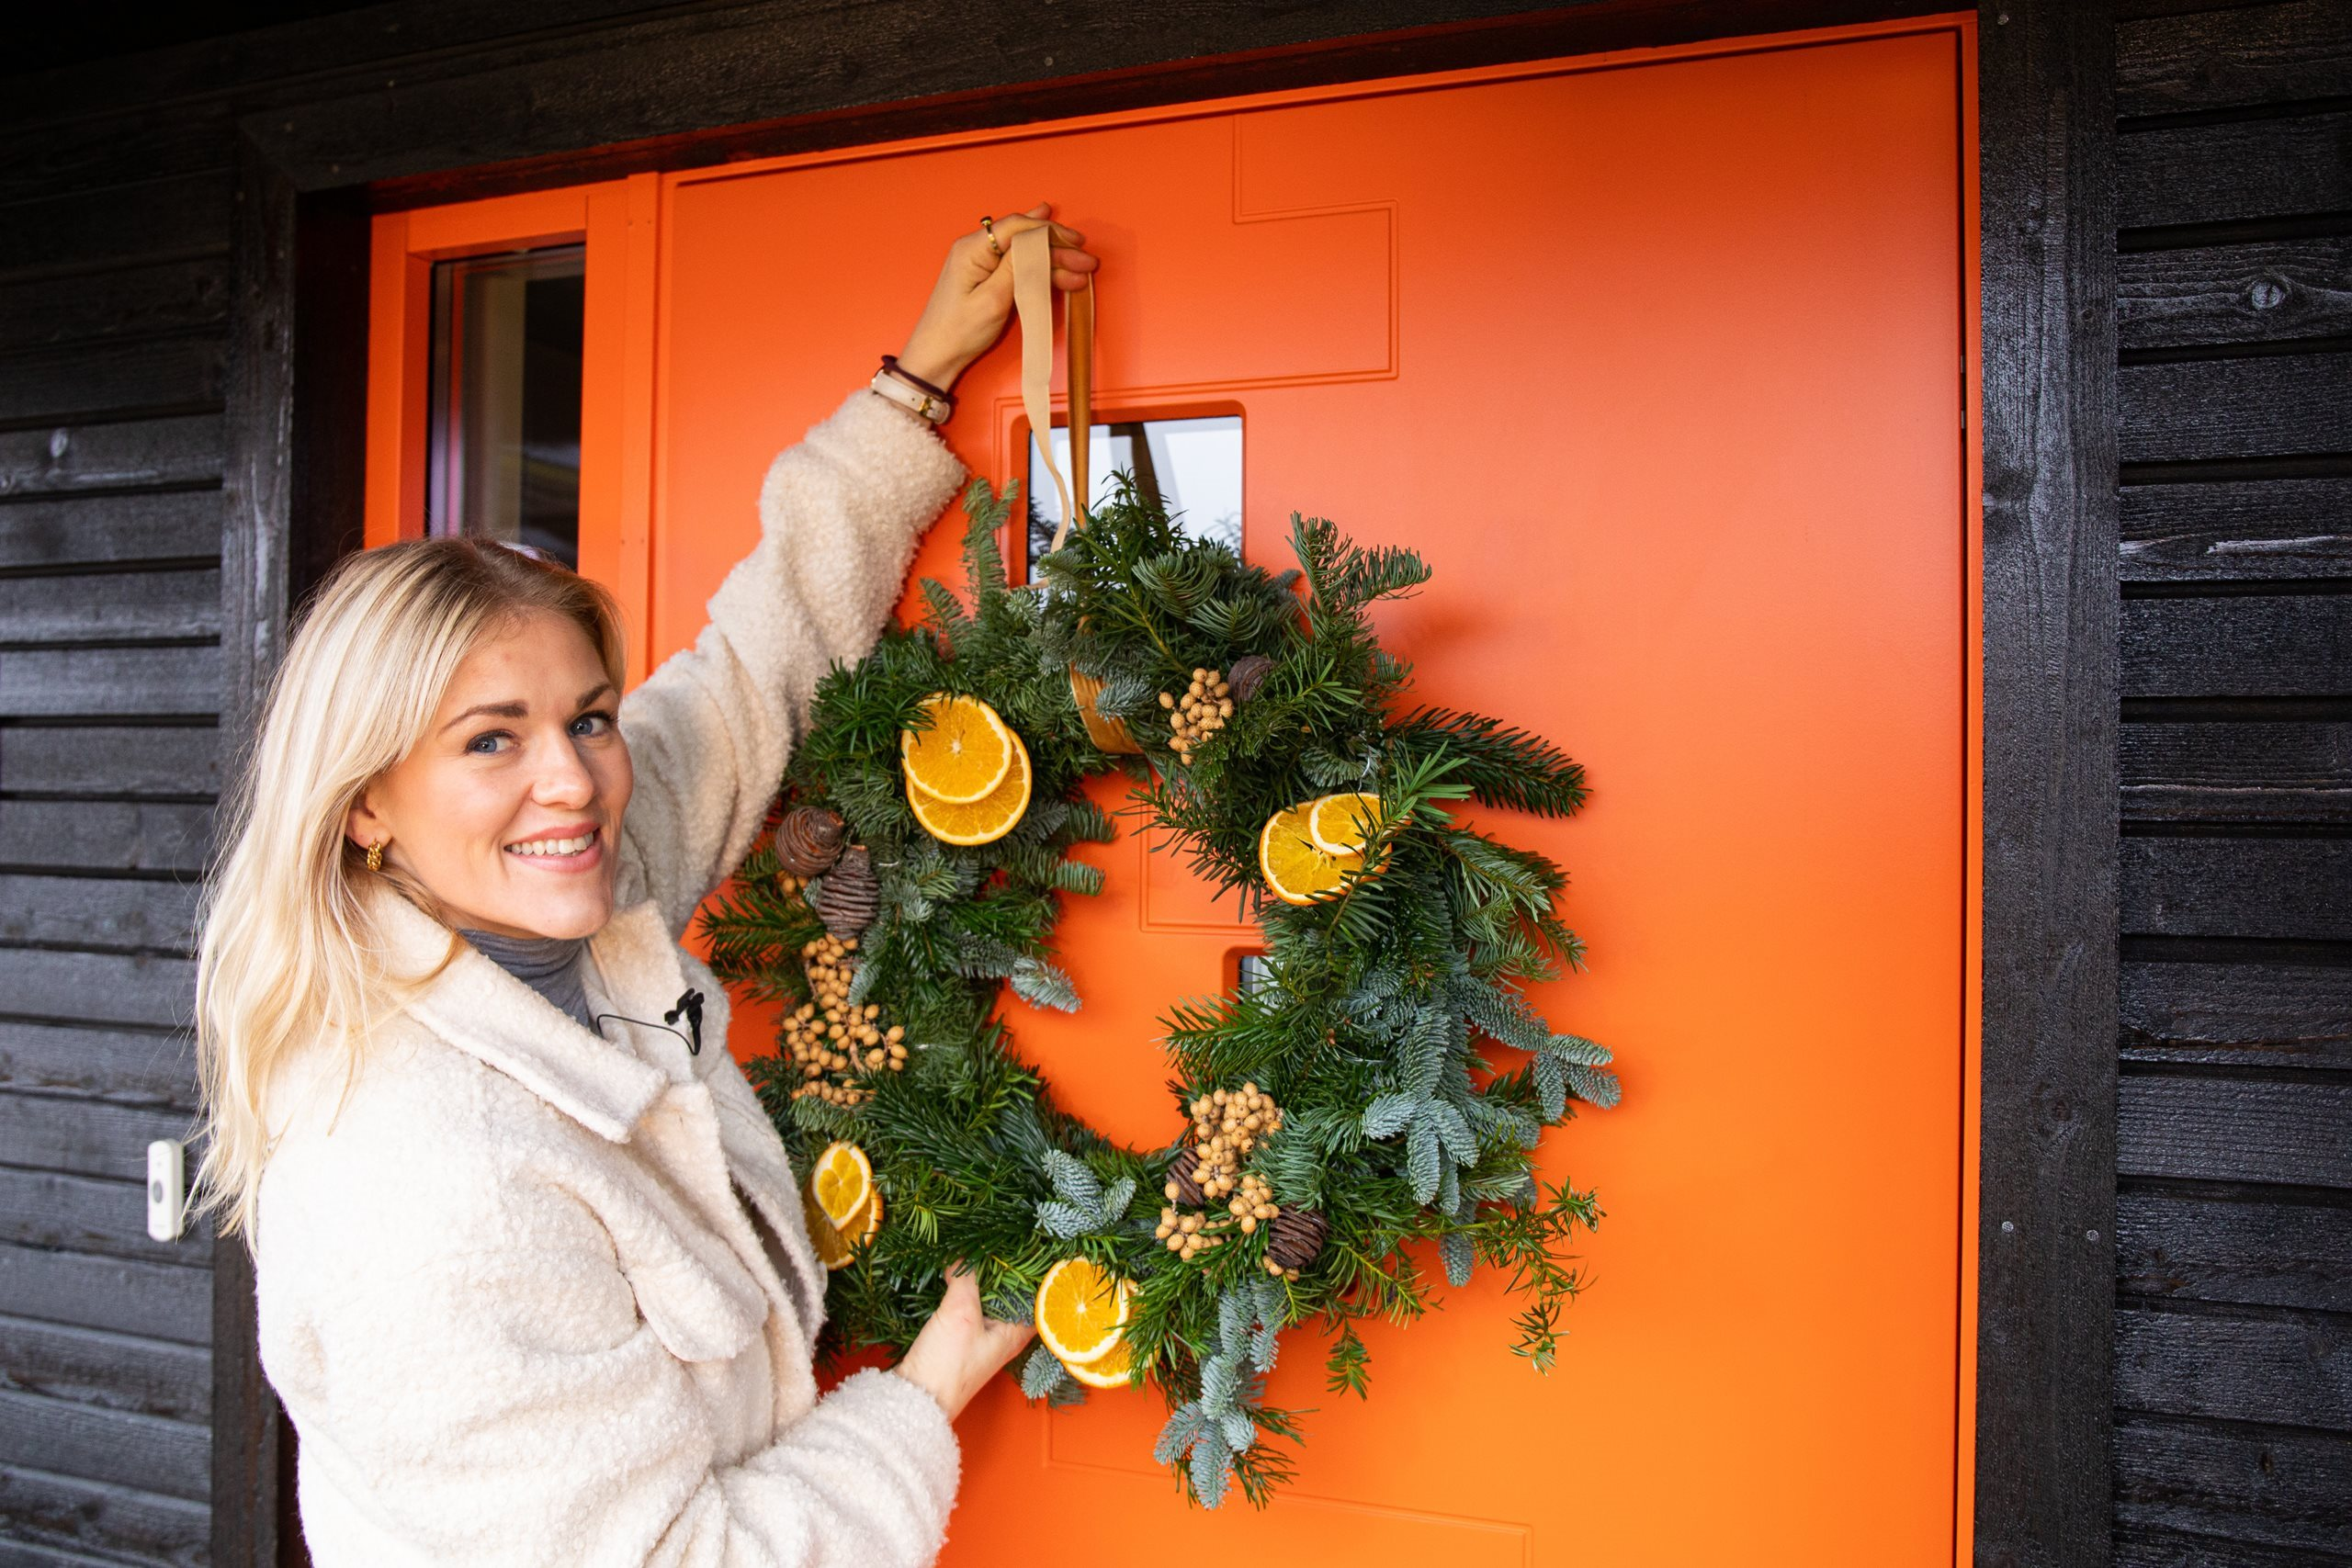 Swedoor-julestyling-Pulse-orange-med-krans